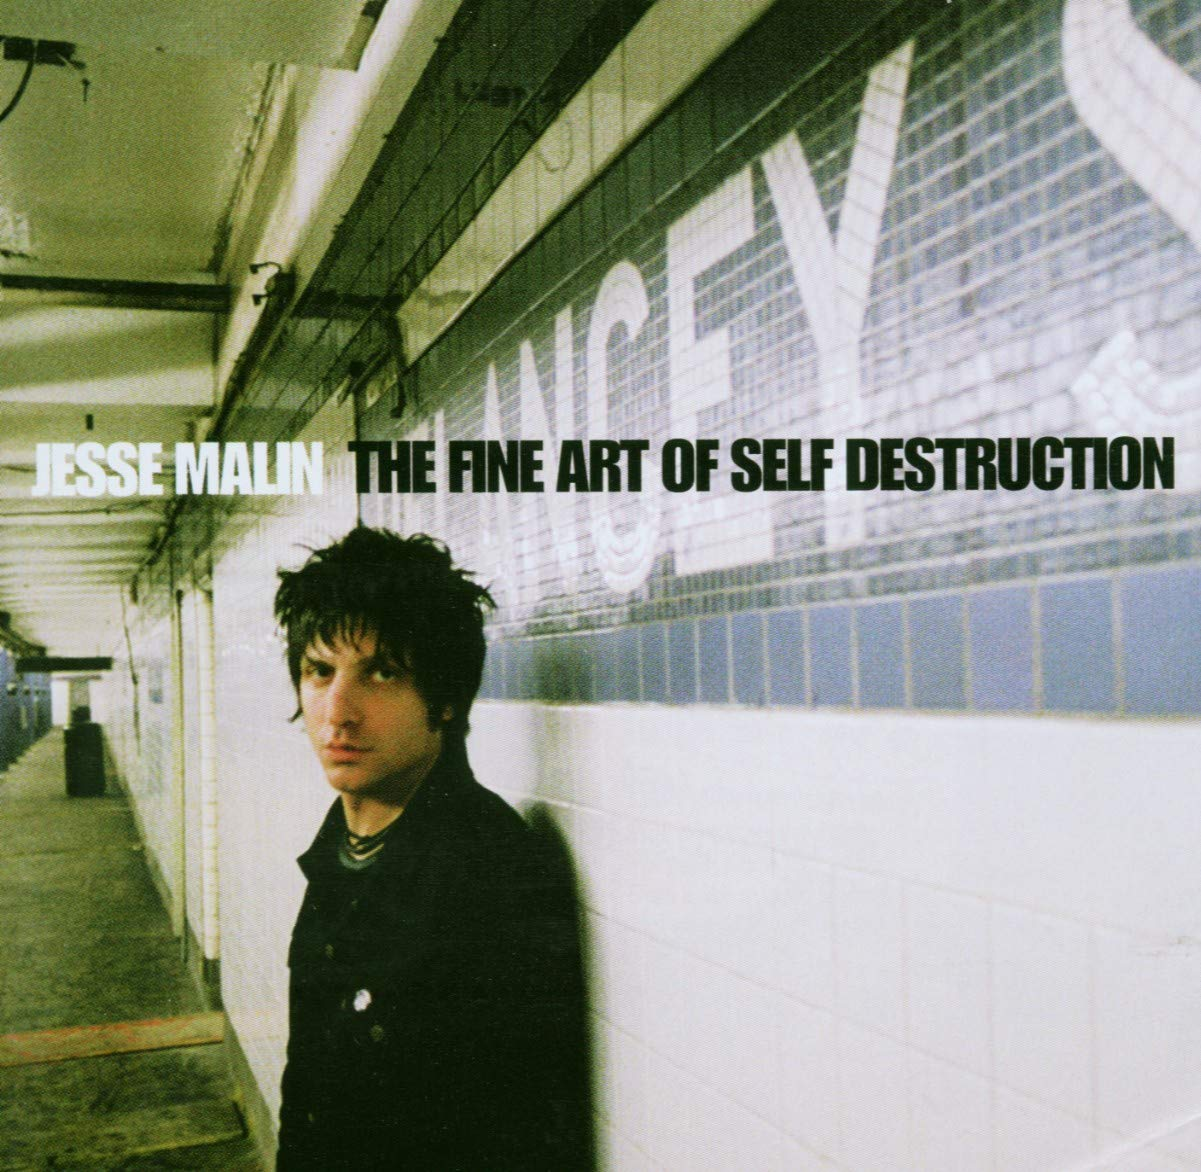 Jesse Malin, The Fine Art of Self Destruction